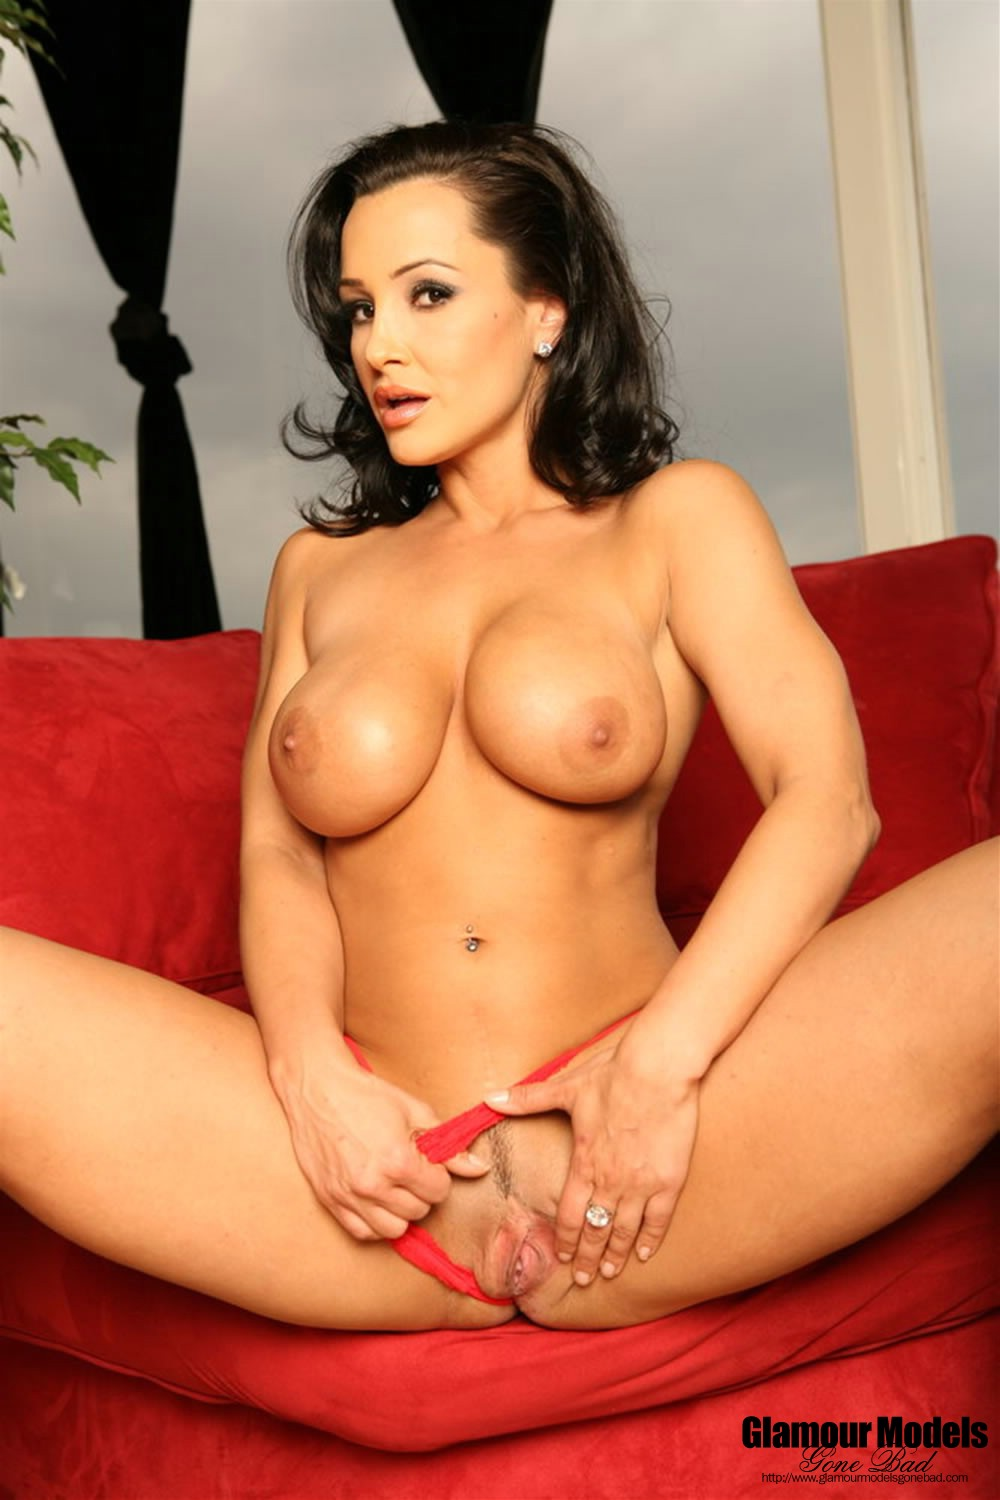 Naked pictures of lisa ann